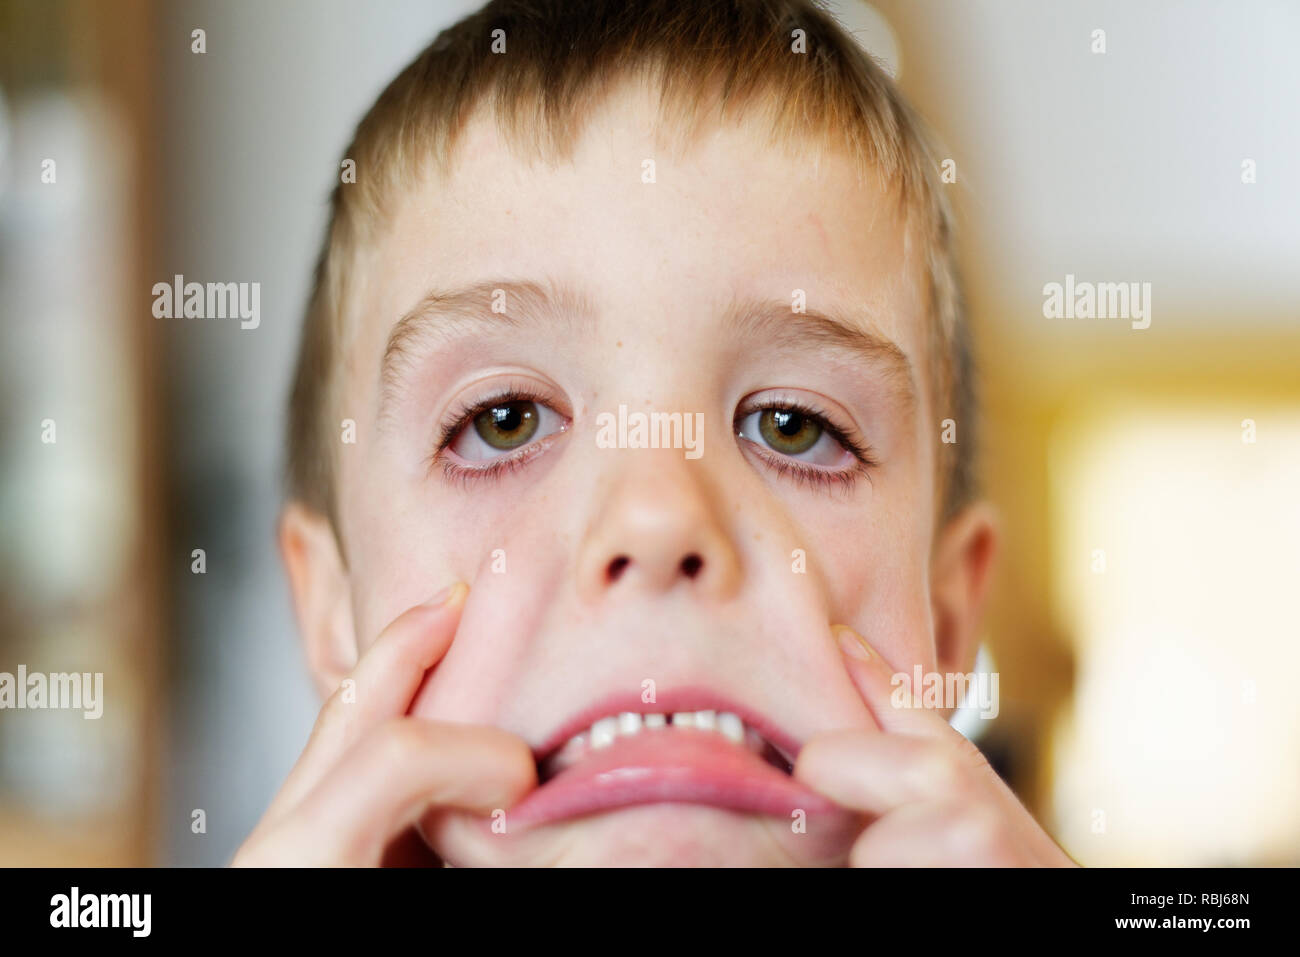 A young boy (6 yrs old) pulling faces at the camera - Stock Image